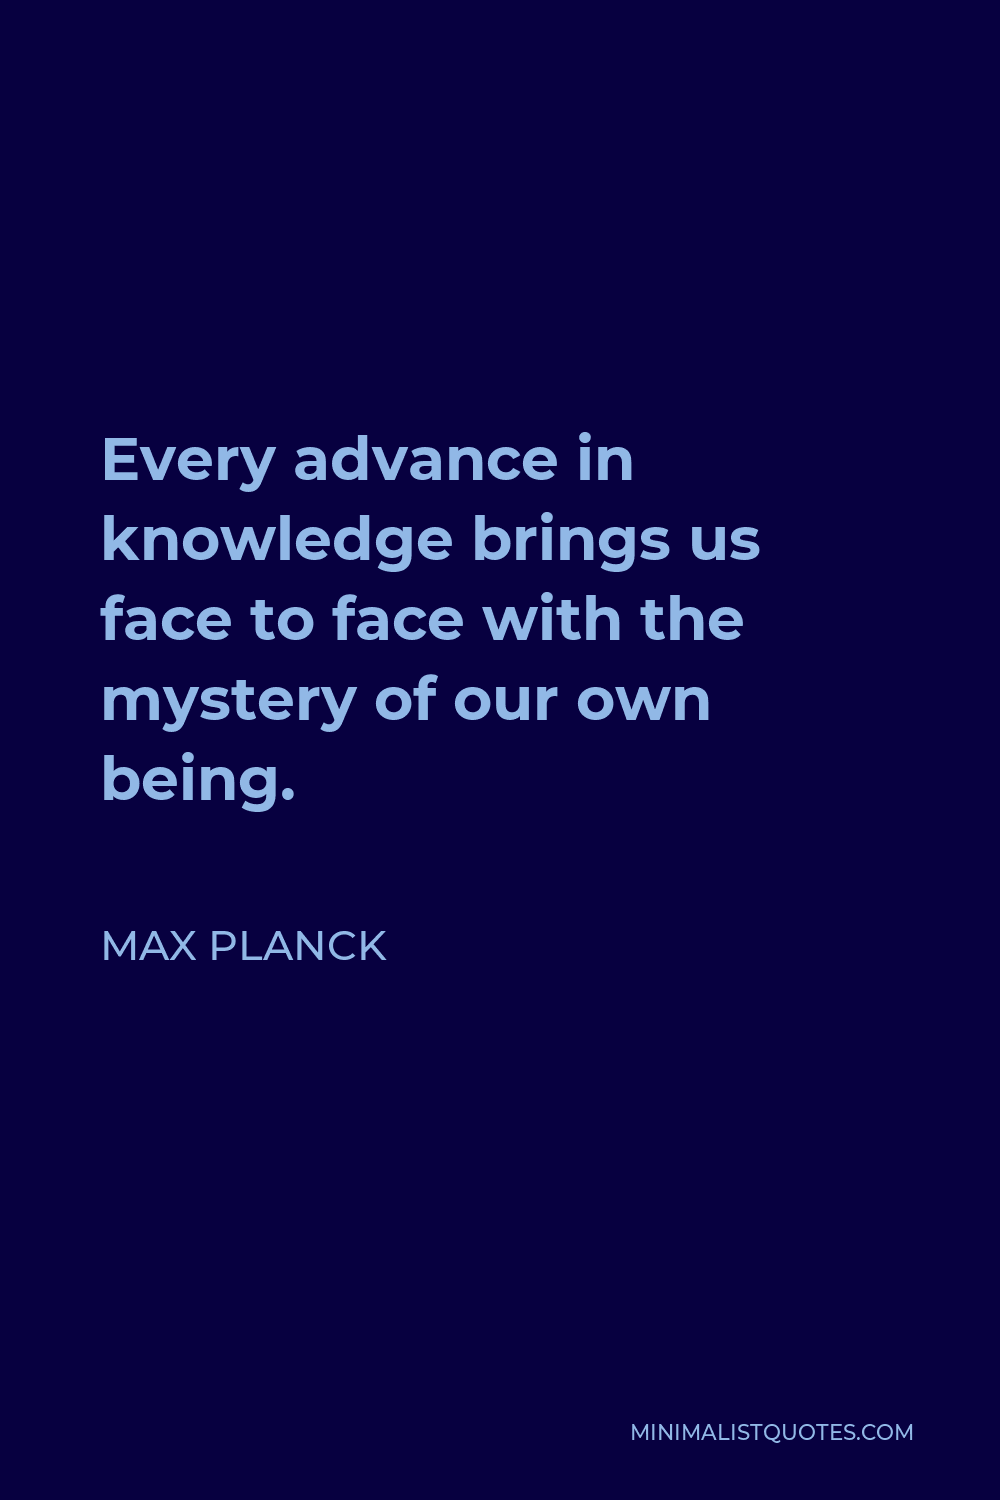 Max Planck Quote - Every advance in knowledge brings us face to face with the mystery of our own being.